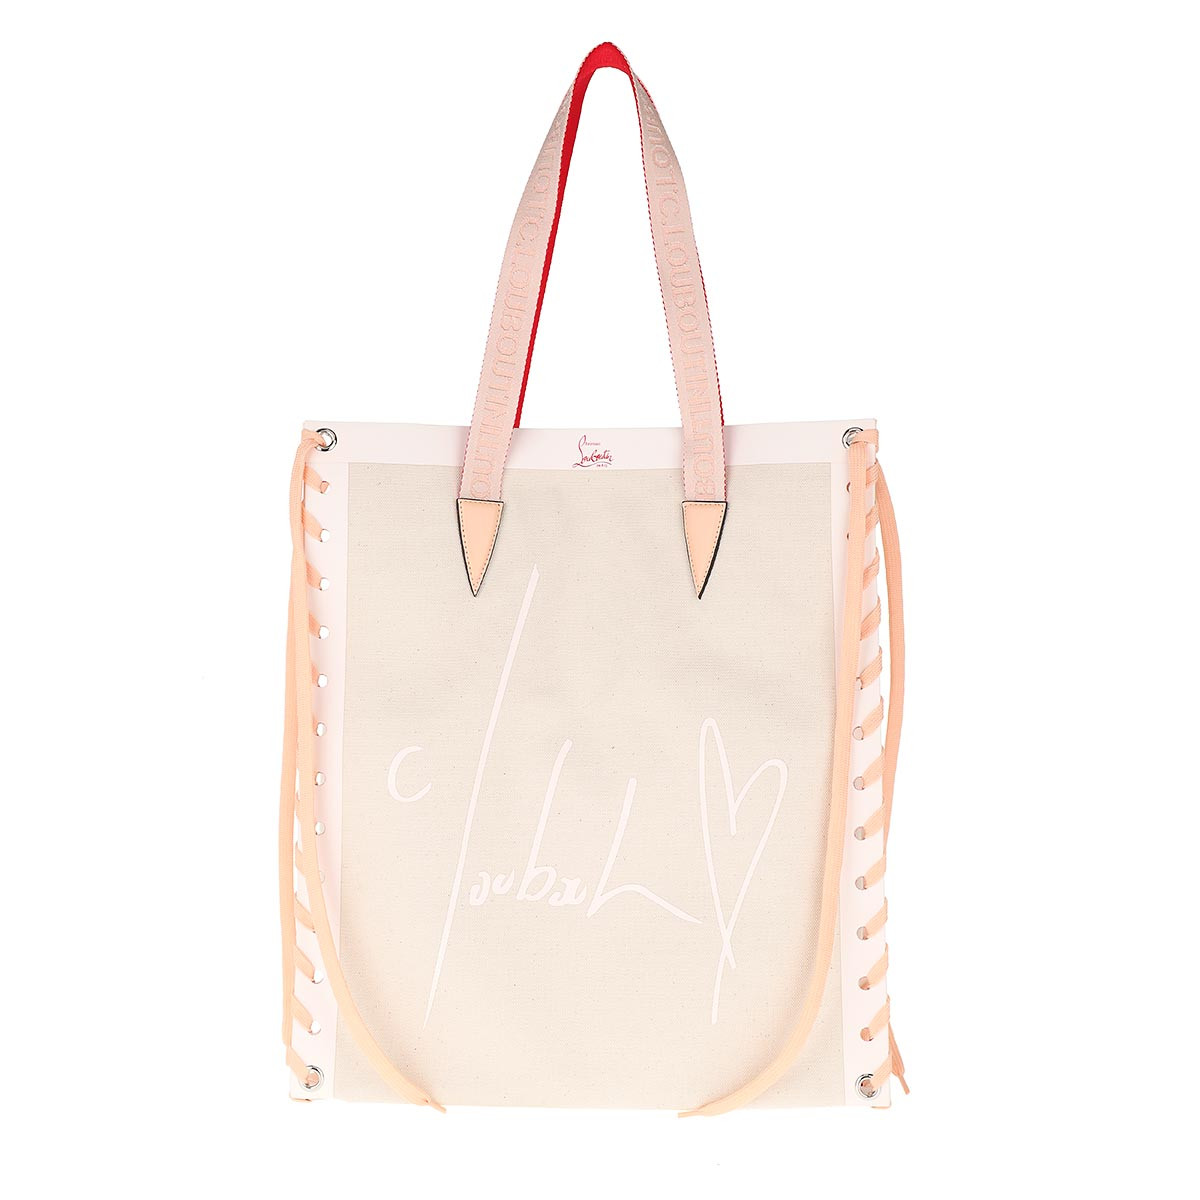 Christian Louboutin Tote - Small Cabalace Shopping Tote Bag Natural/Rose - in beige - für Damen